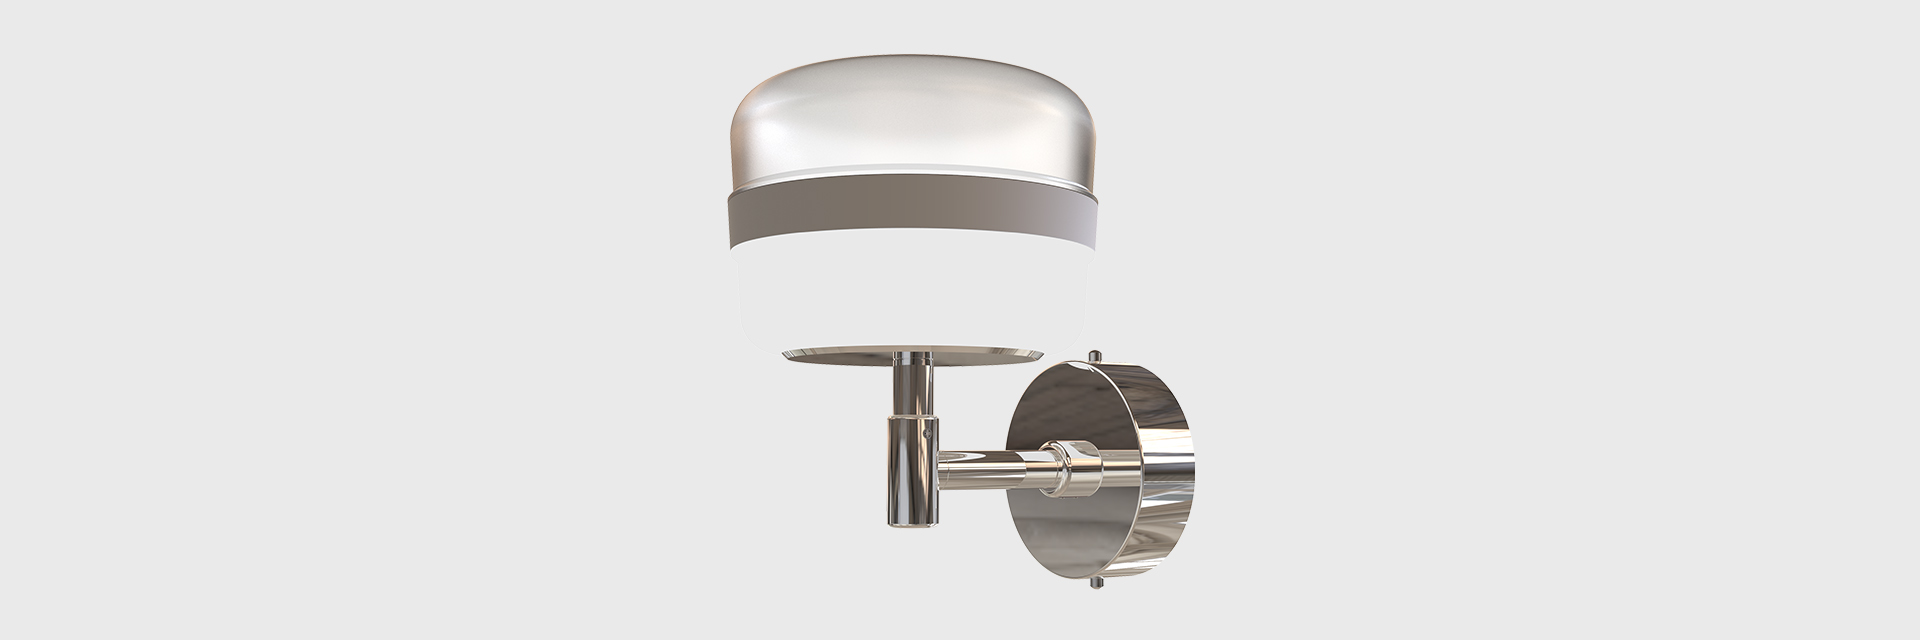 Sconce Mult Led Wall And Ceiling Lights Series Zentem